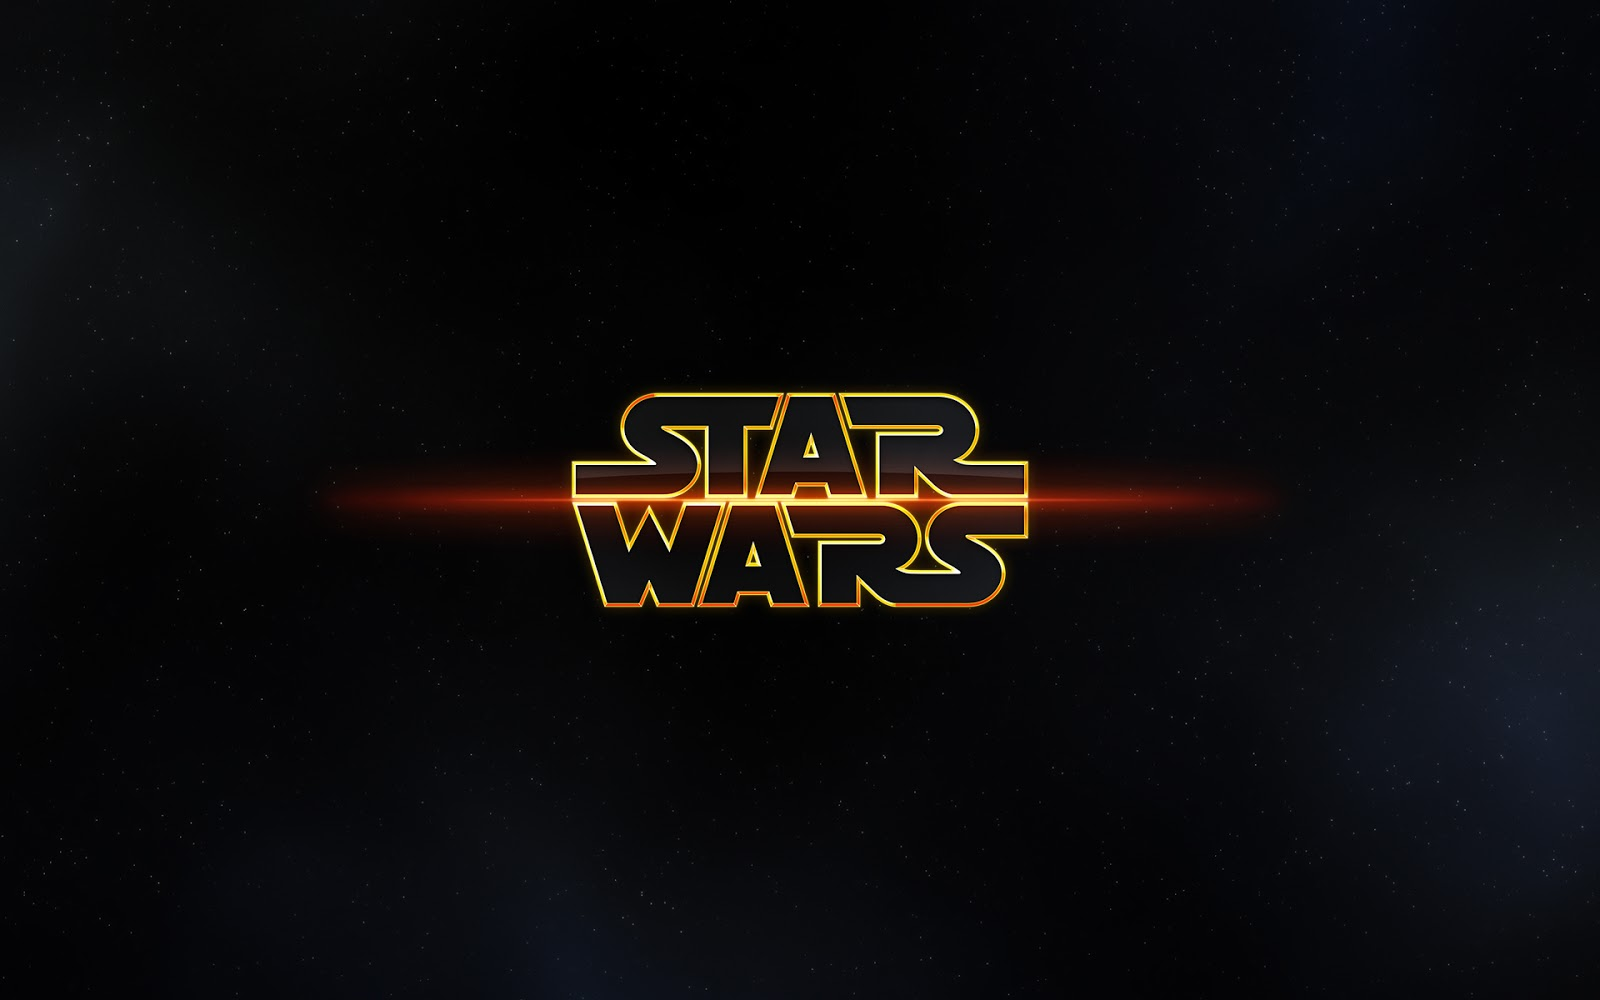 Star wars Wallpapers HD Download